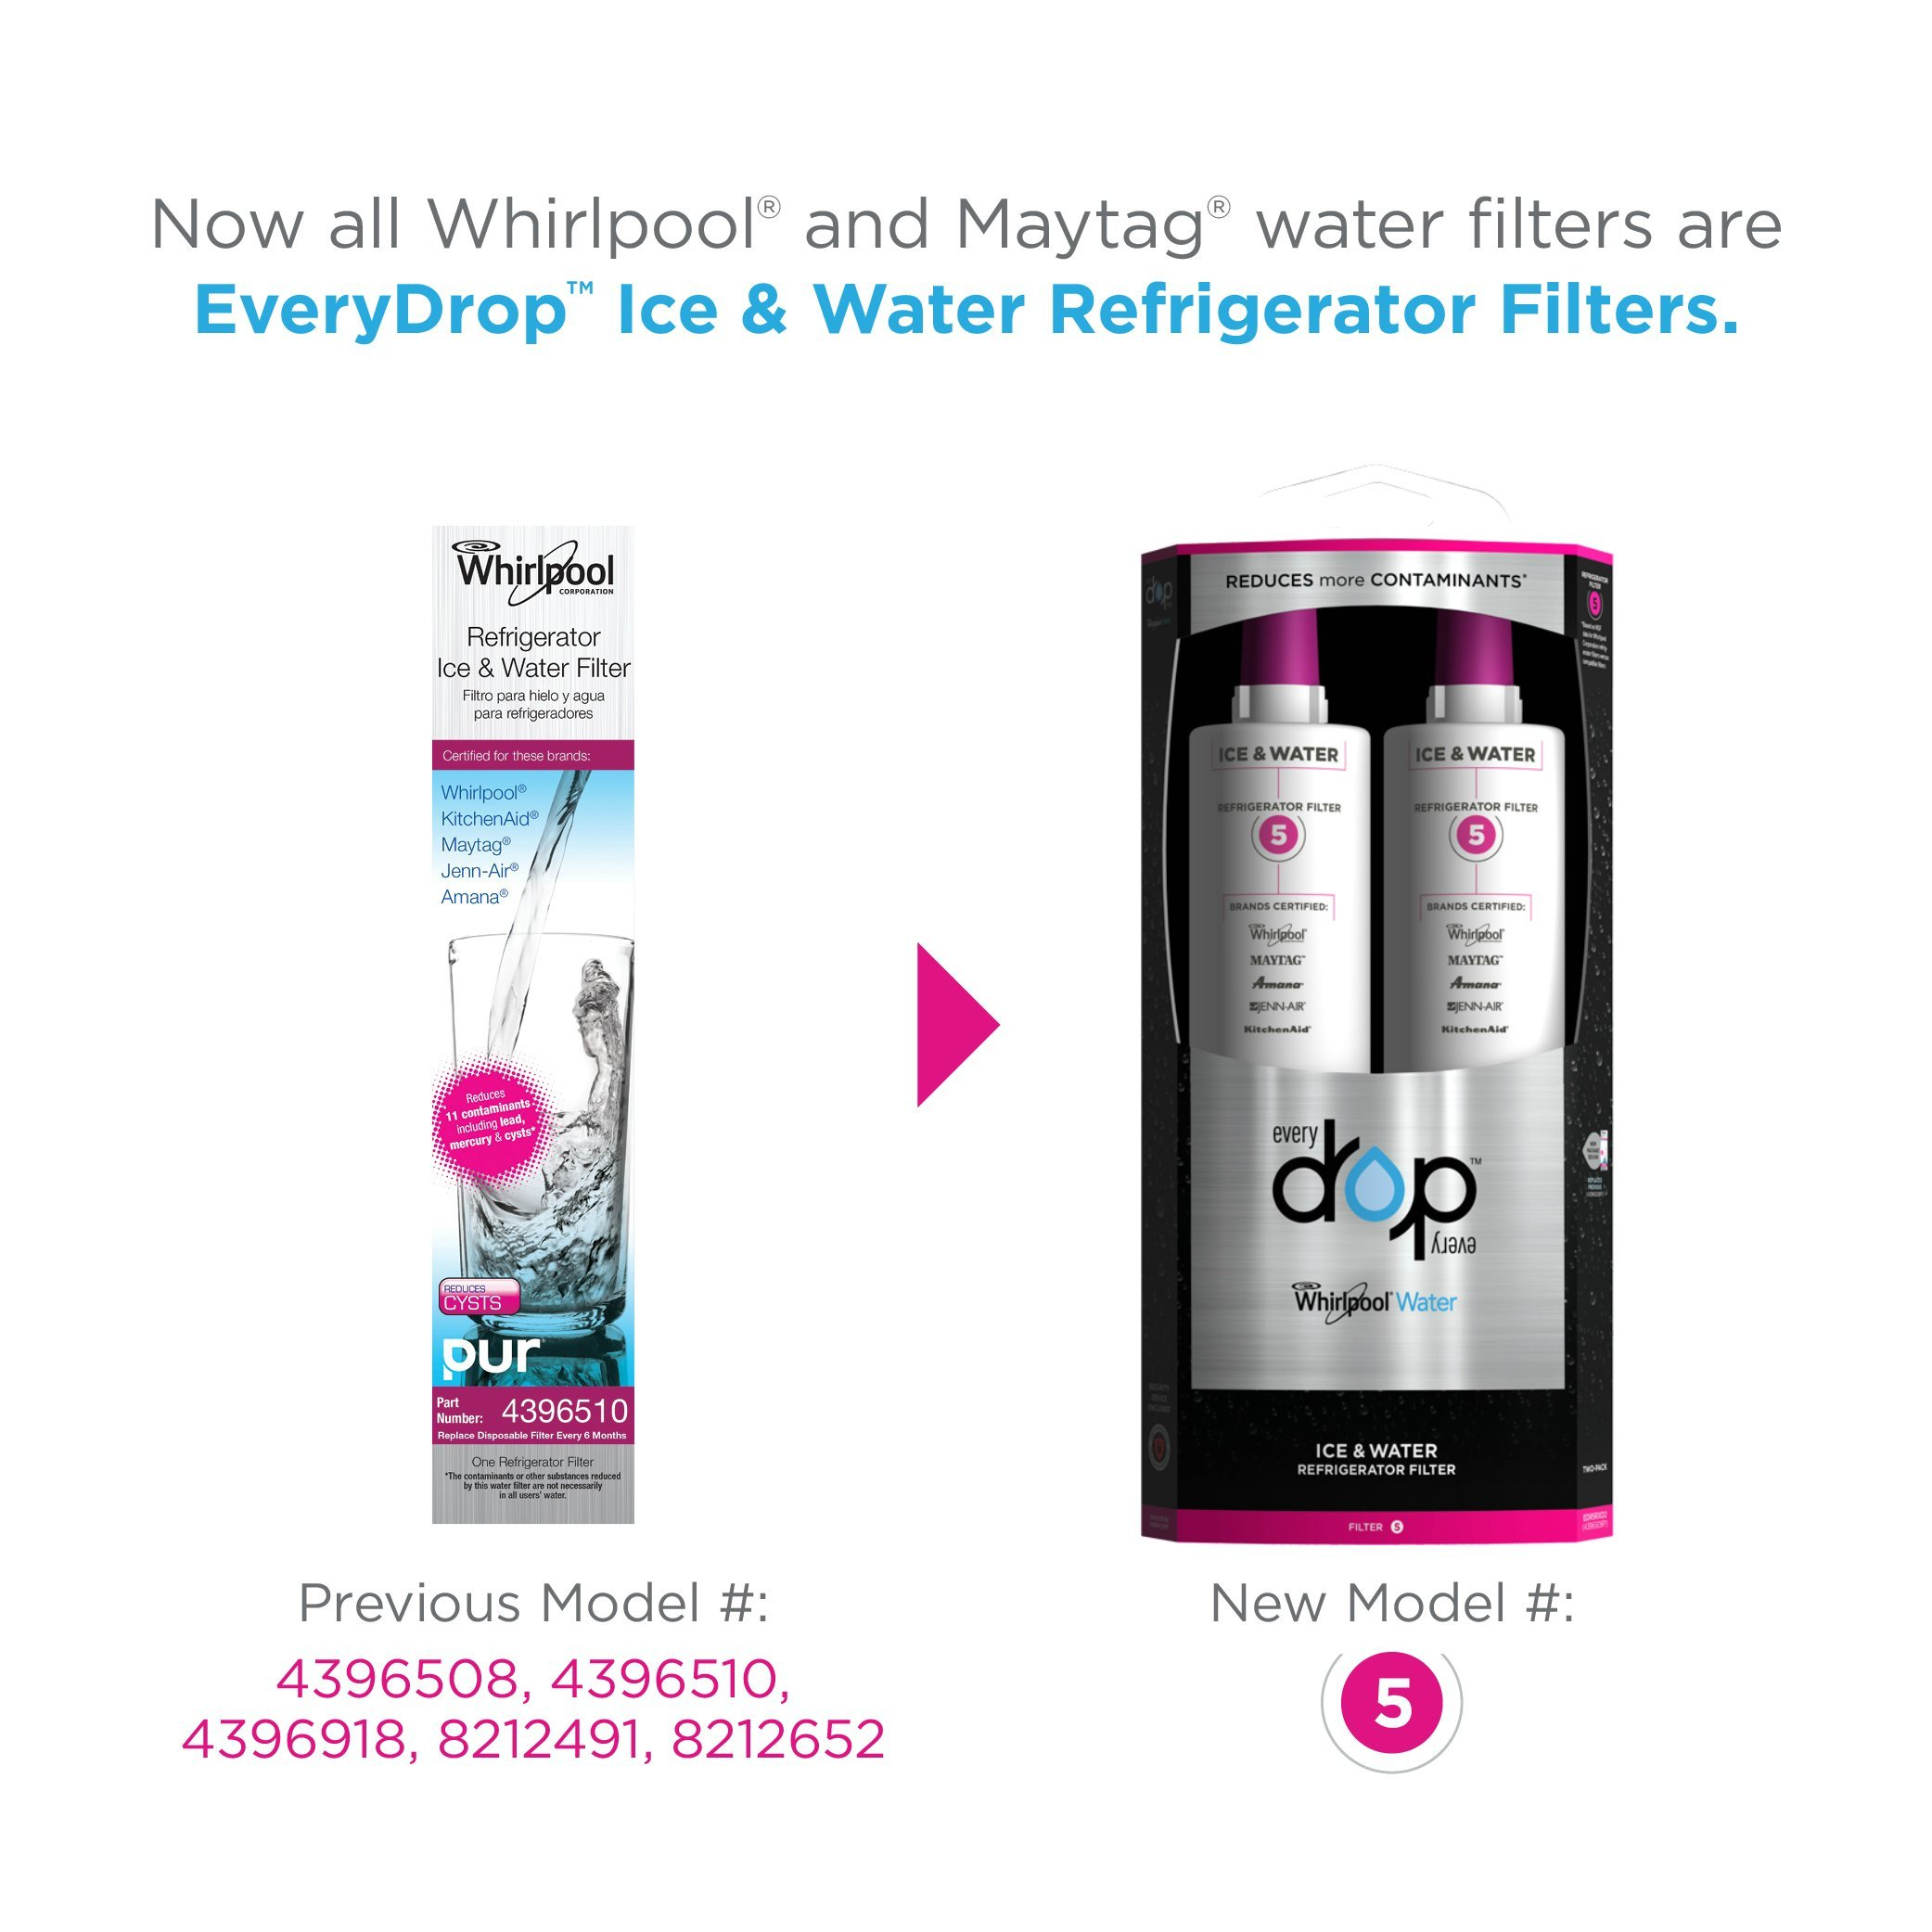 EveryDrop by Whirlpool Refrigerator Water Filter 5 (Pack of 2) by Whirlpool (Image #1)